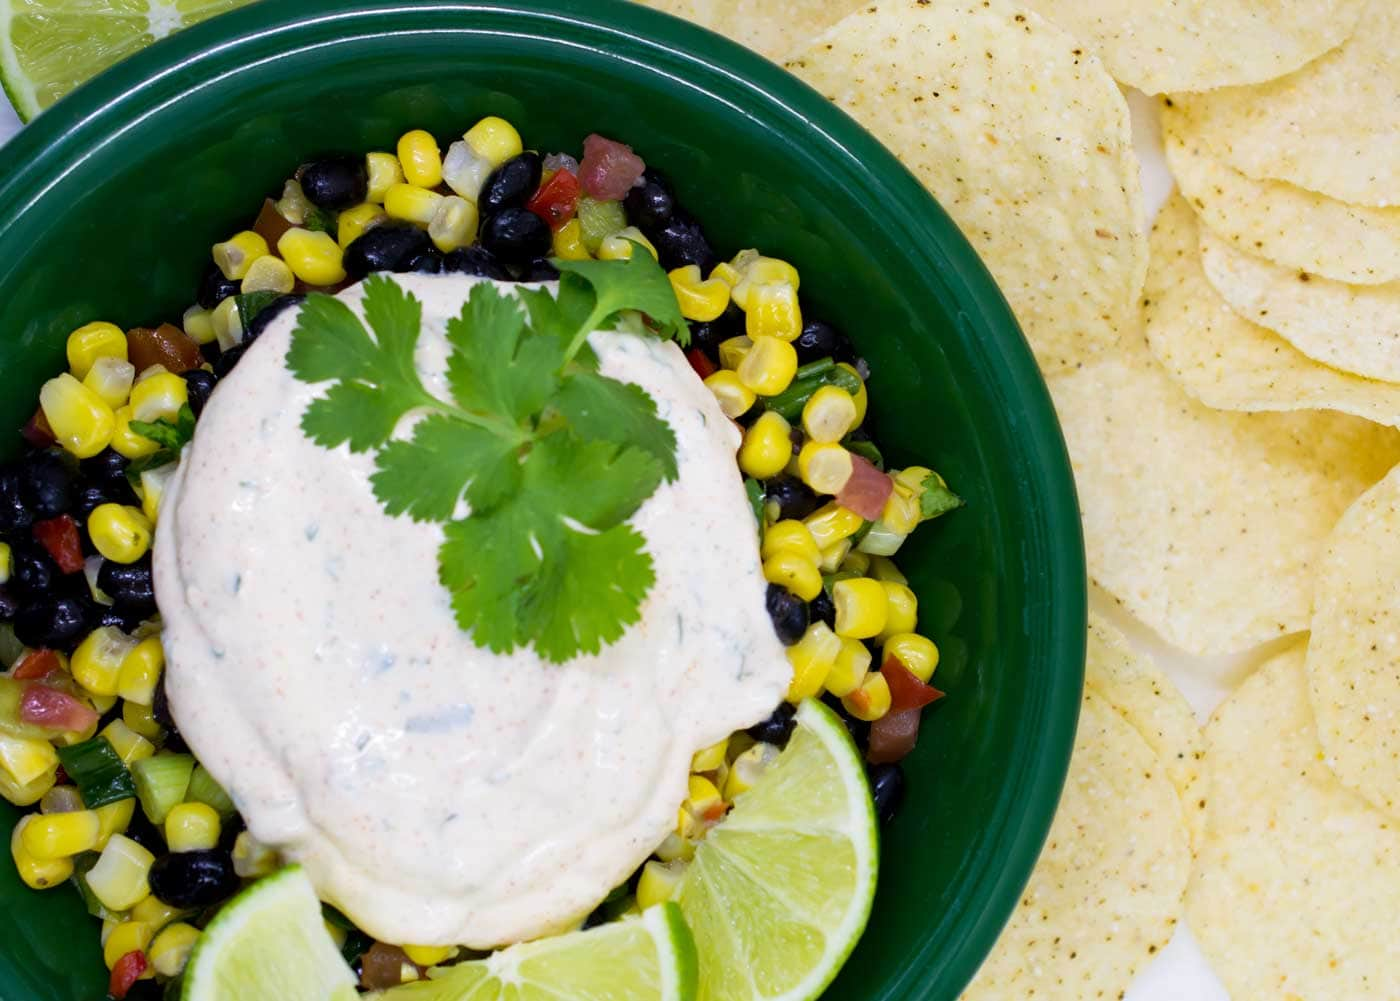 Chipotle Lime Crema in a Plate